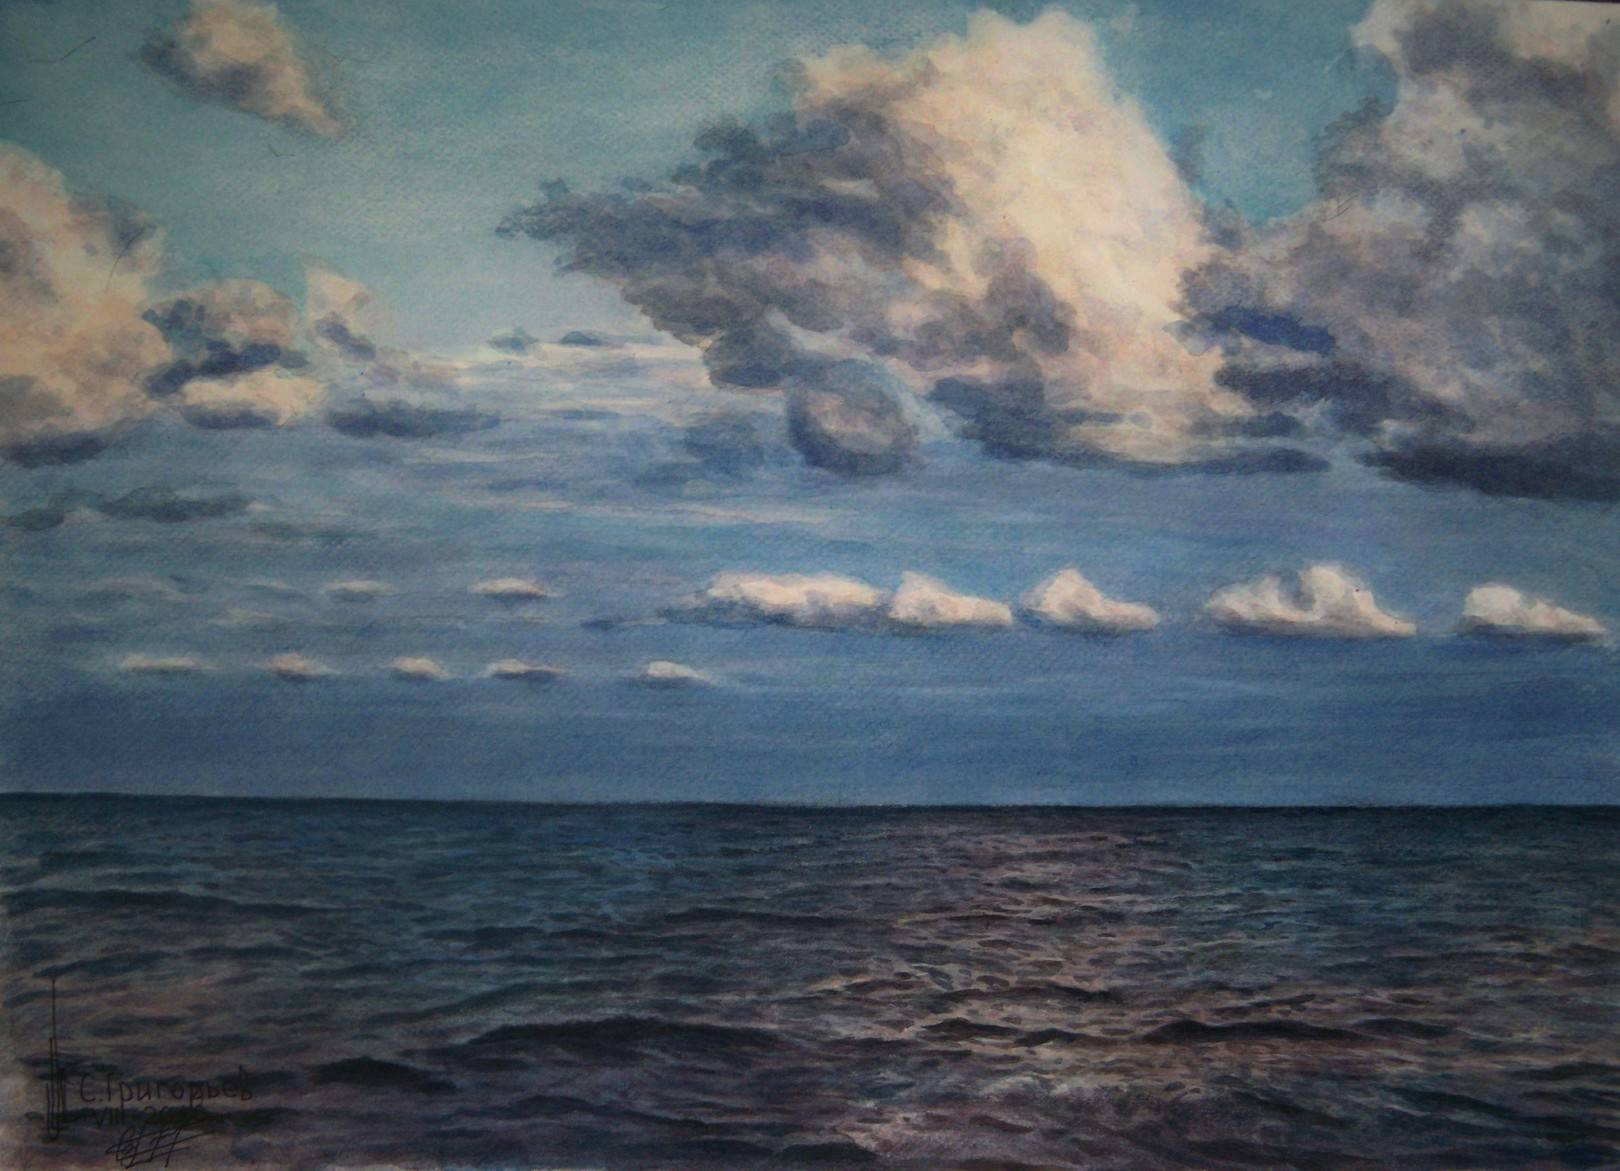 WATERCOLOUR BY SERGII GRYGORIEV. SEA VIEW